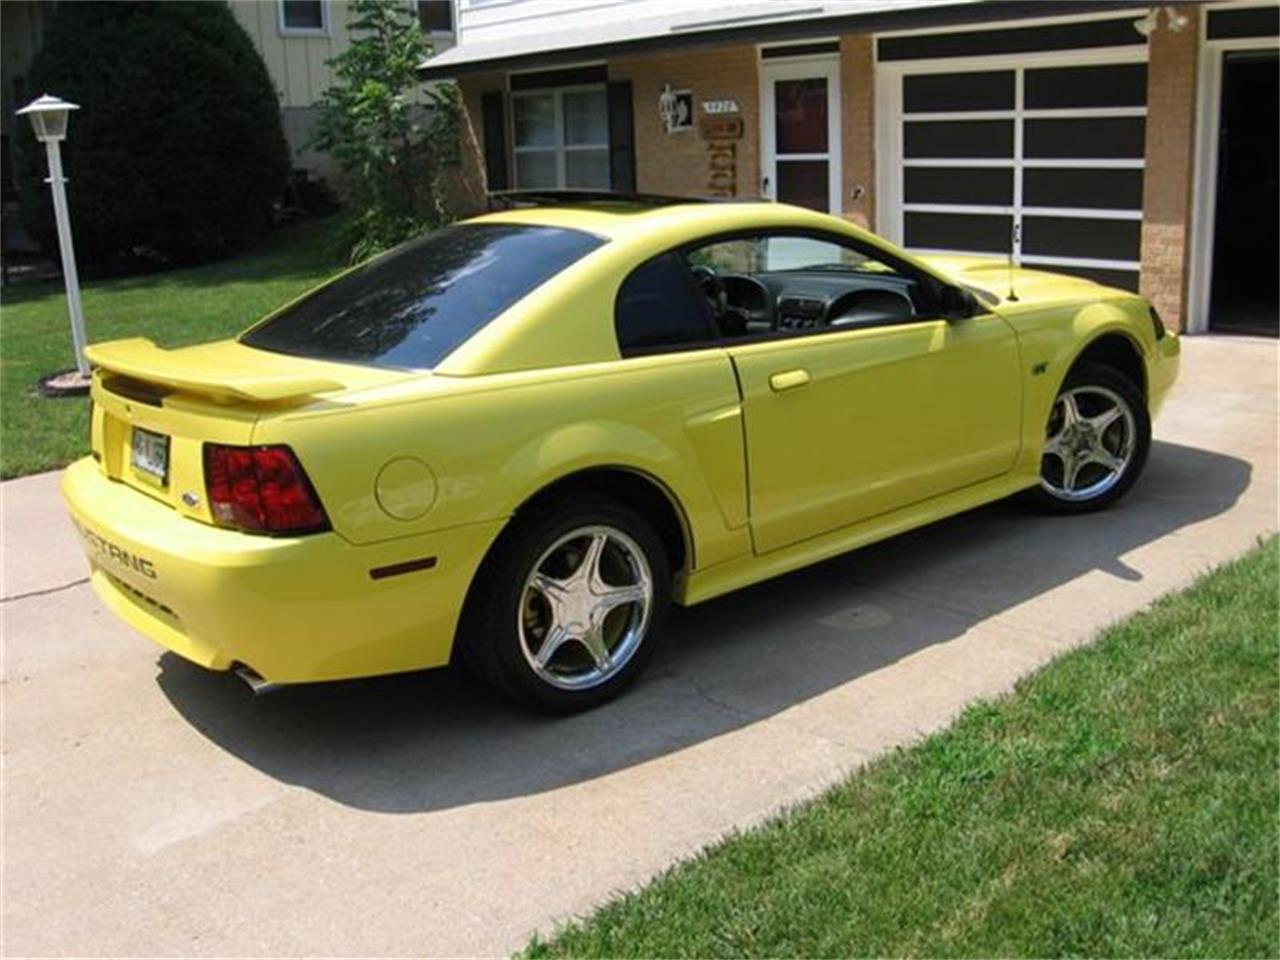 Large Picture of '01 Ford Mustang - $13,900.00 Offered by Classic Car Guy - EACO